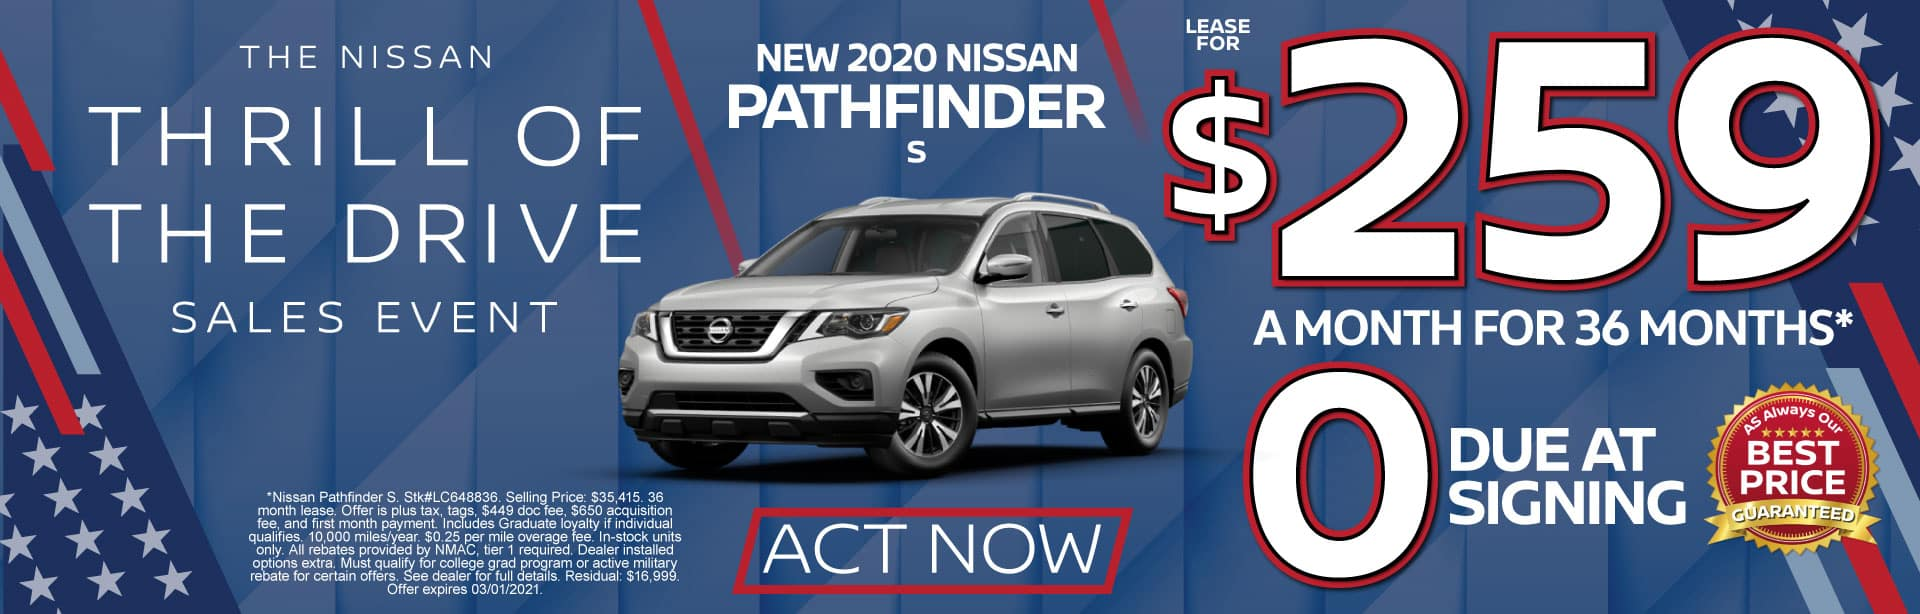 2020 Nissan Pathfinder S $259 a month for 36 months* ZERO due at signing. Act Now.